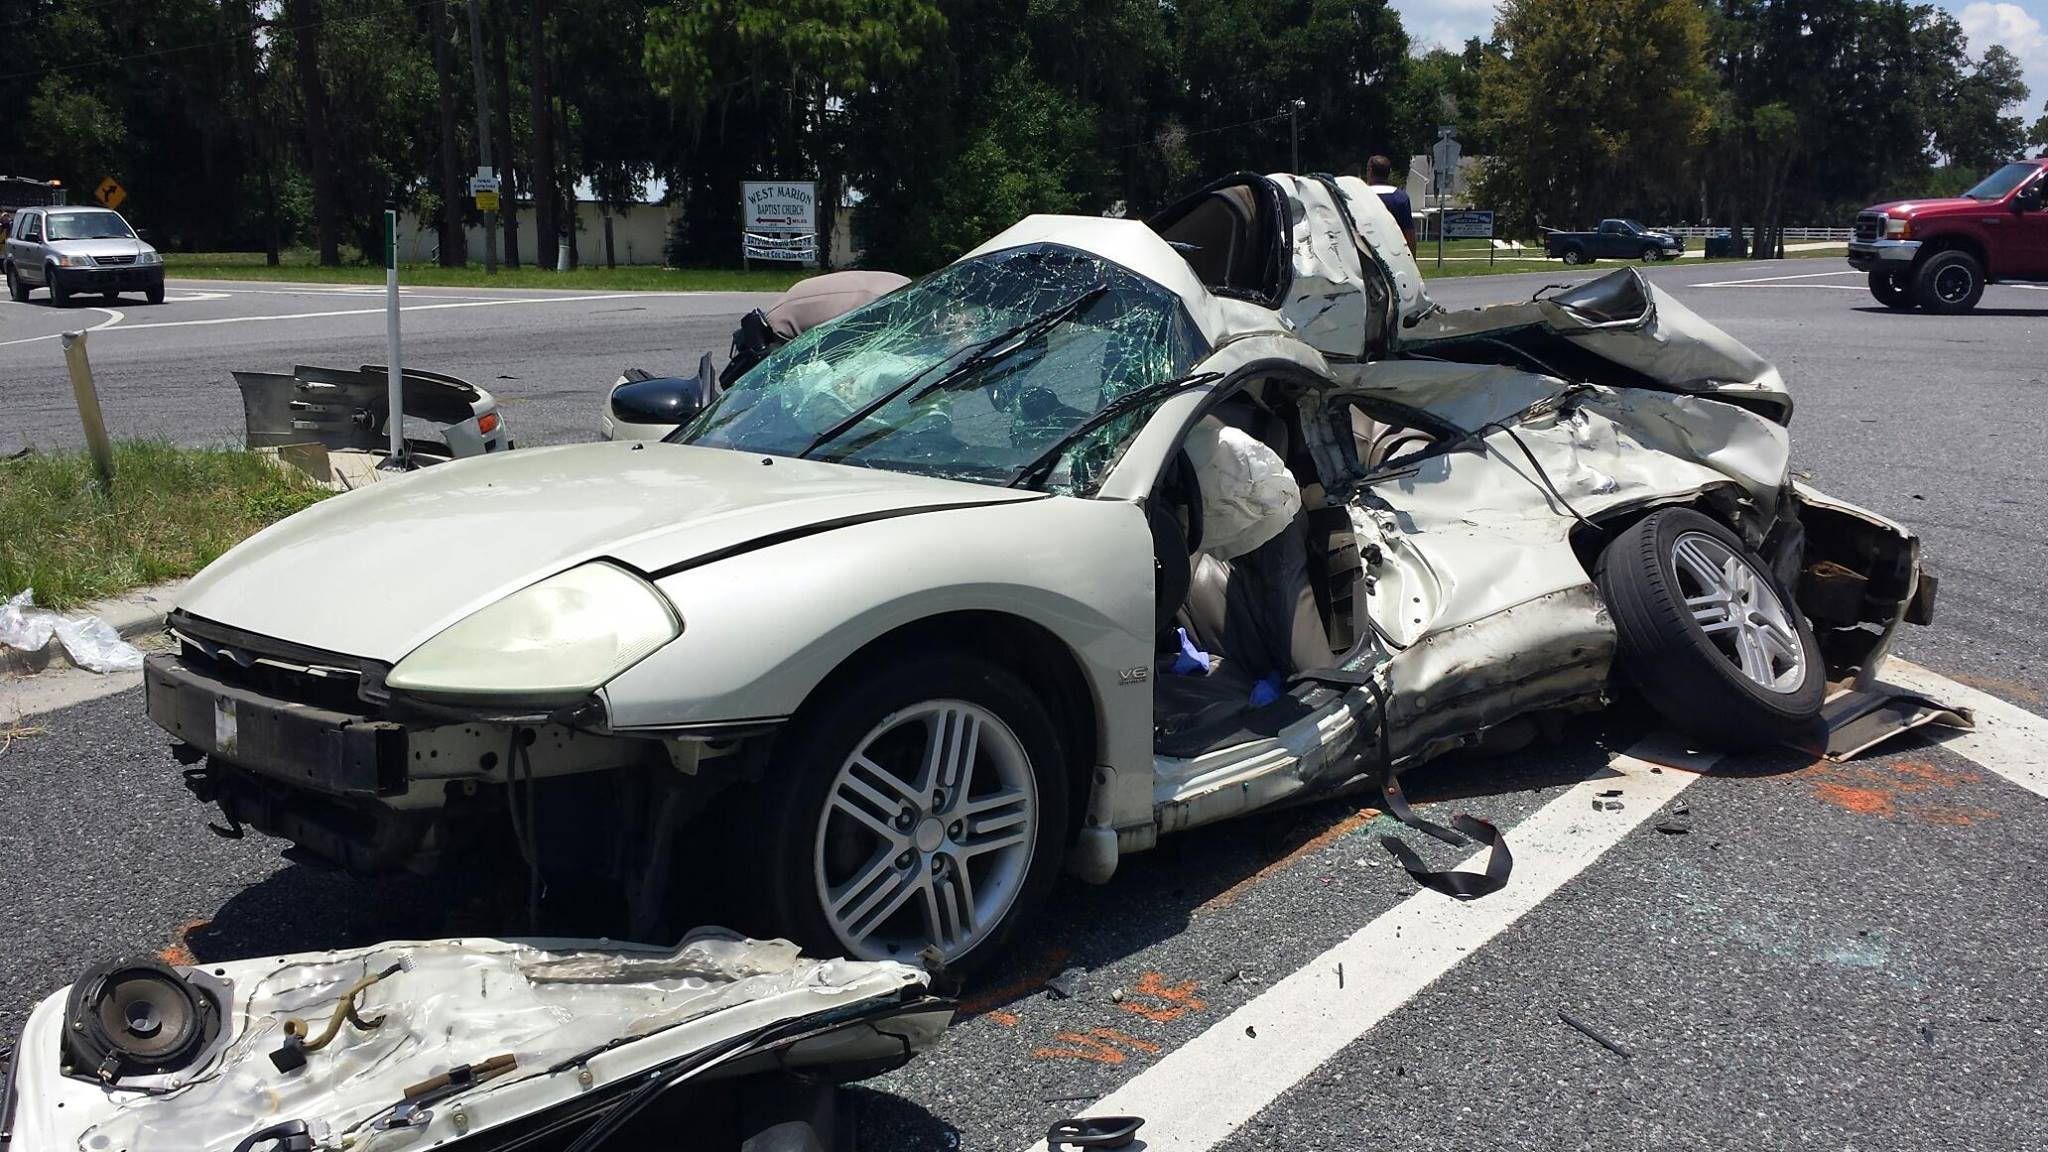 Ocala Post - 2-vehicle crash with serious injuries